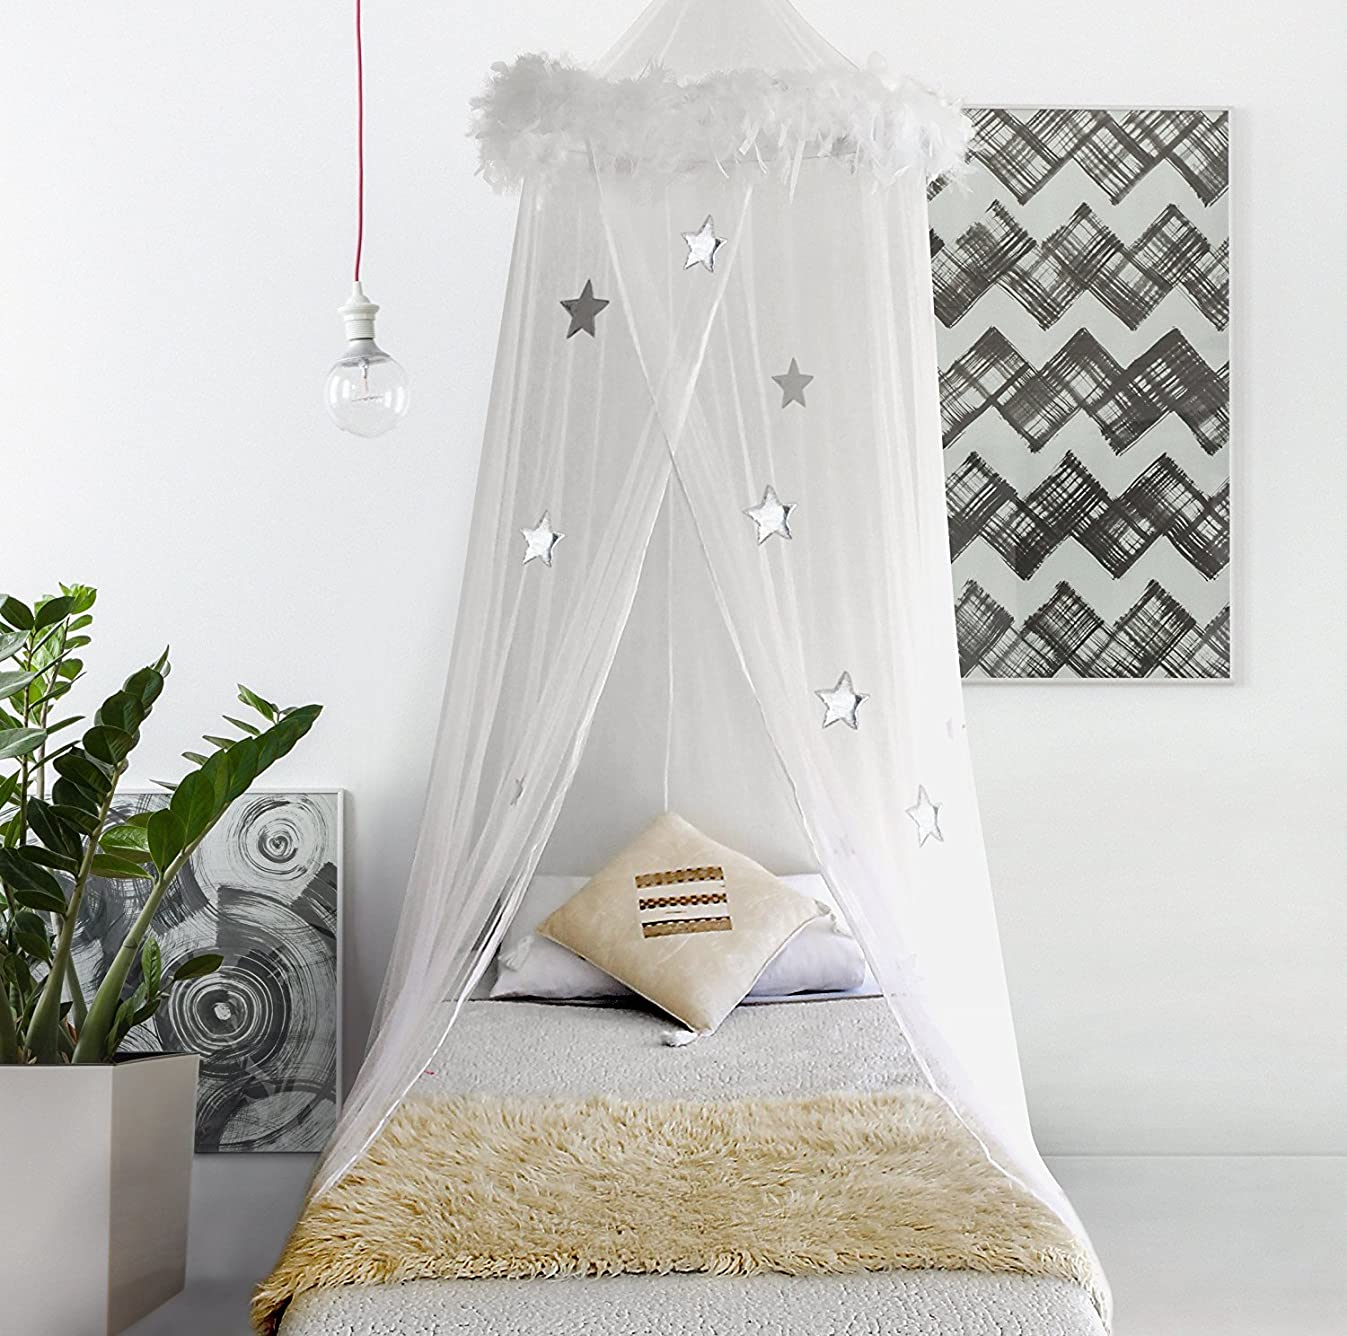 Bobo & Bee Bed Canopy Mosquito Net Curtains with Feathers and Stars for Girls Toddlers and Teens, White